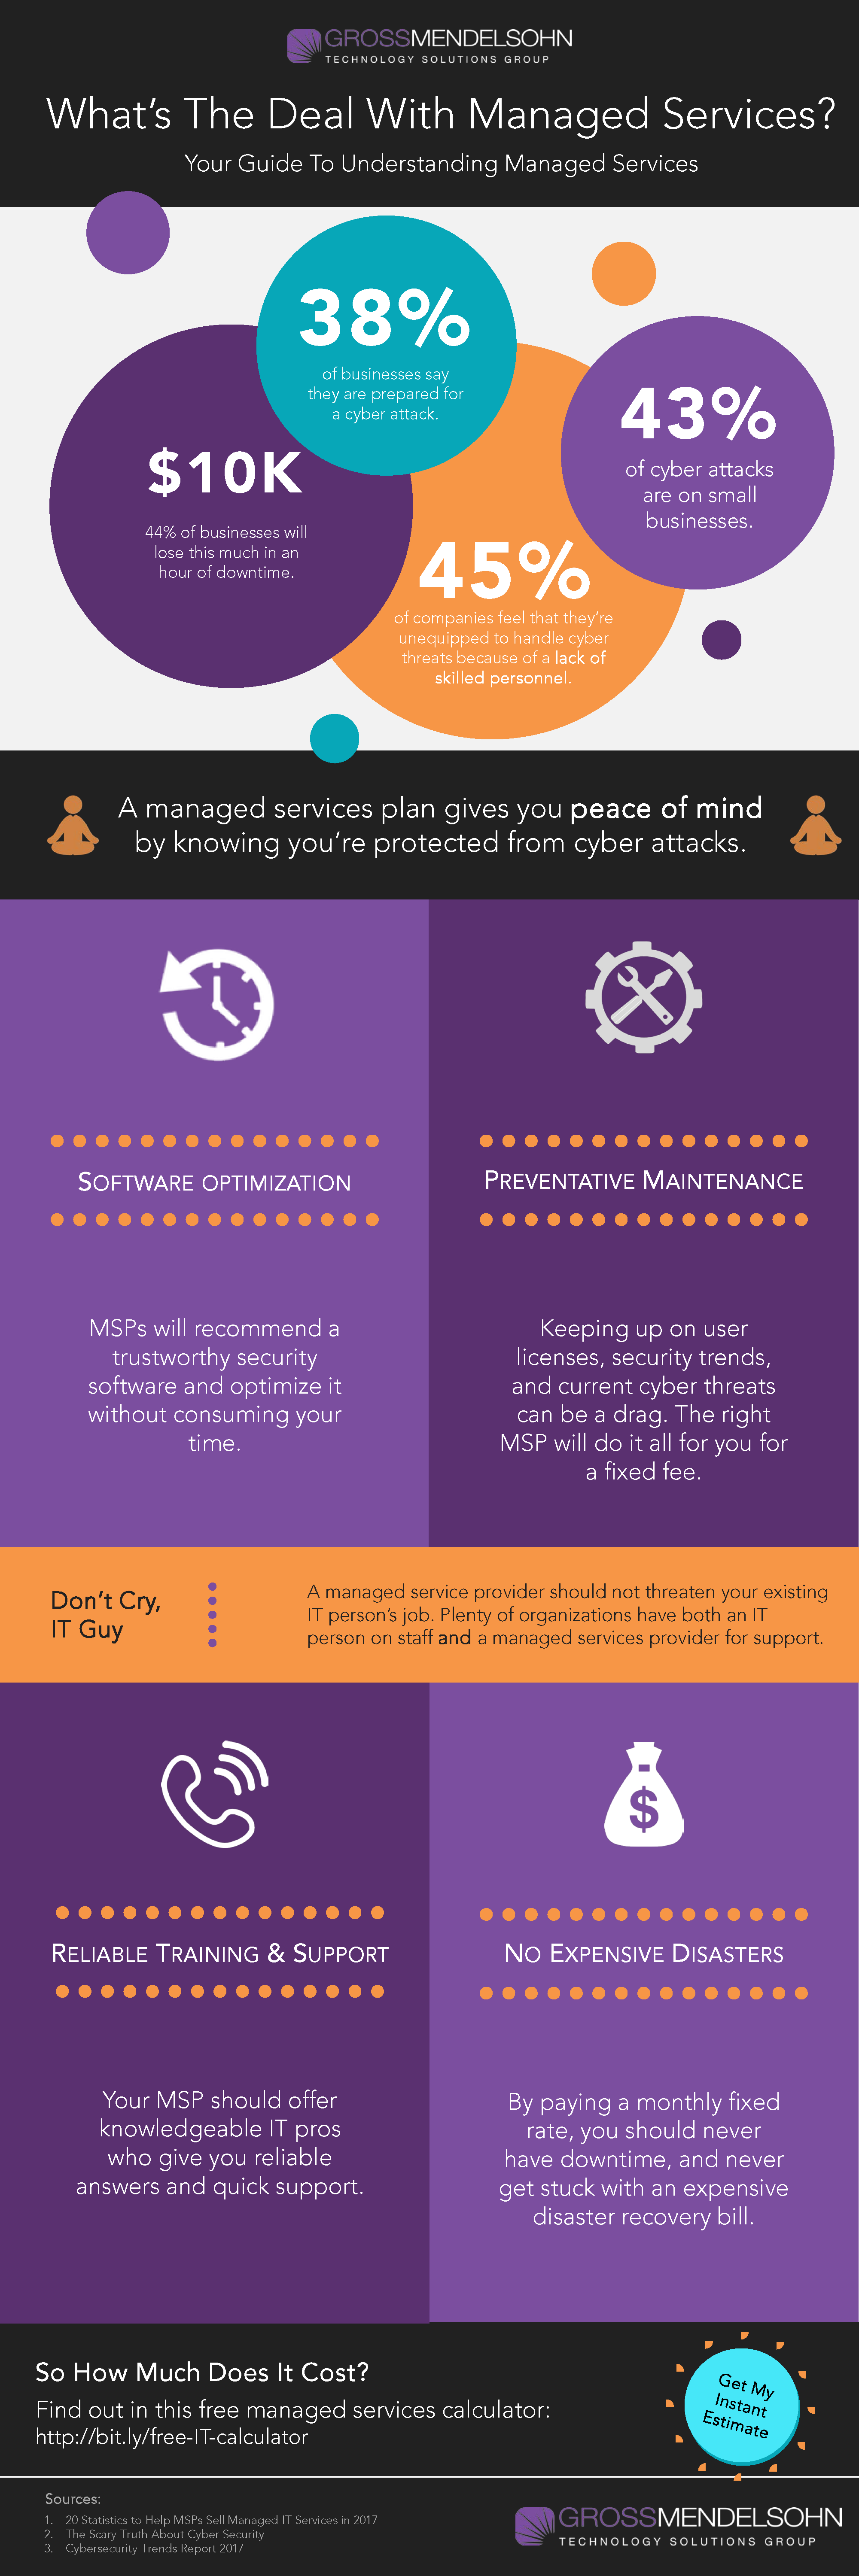 what does managed services mean?